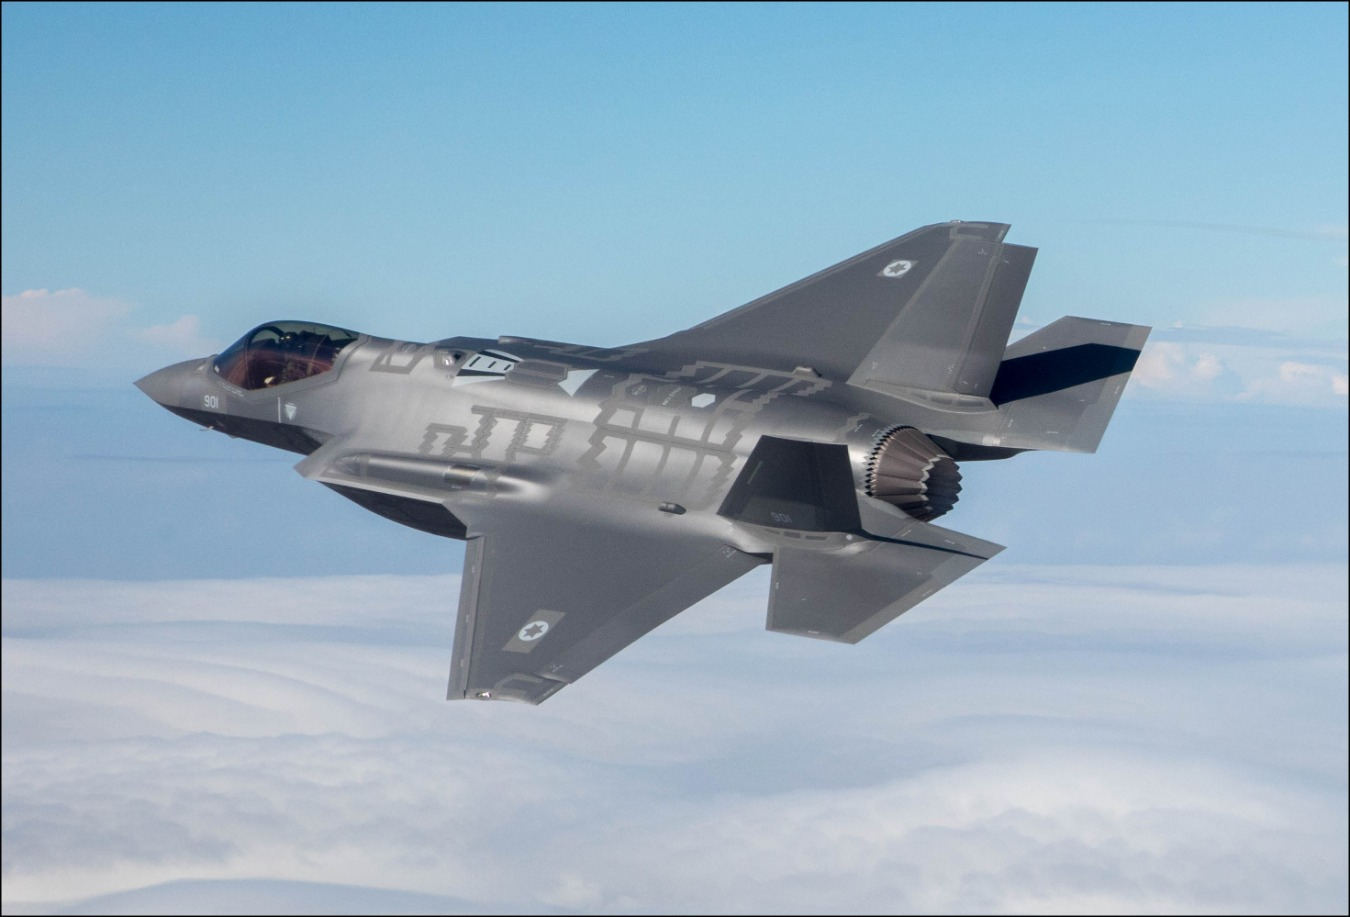 Israel's F-35I Adir Is Taking America's Stealth Fighter To A Whole